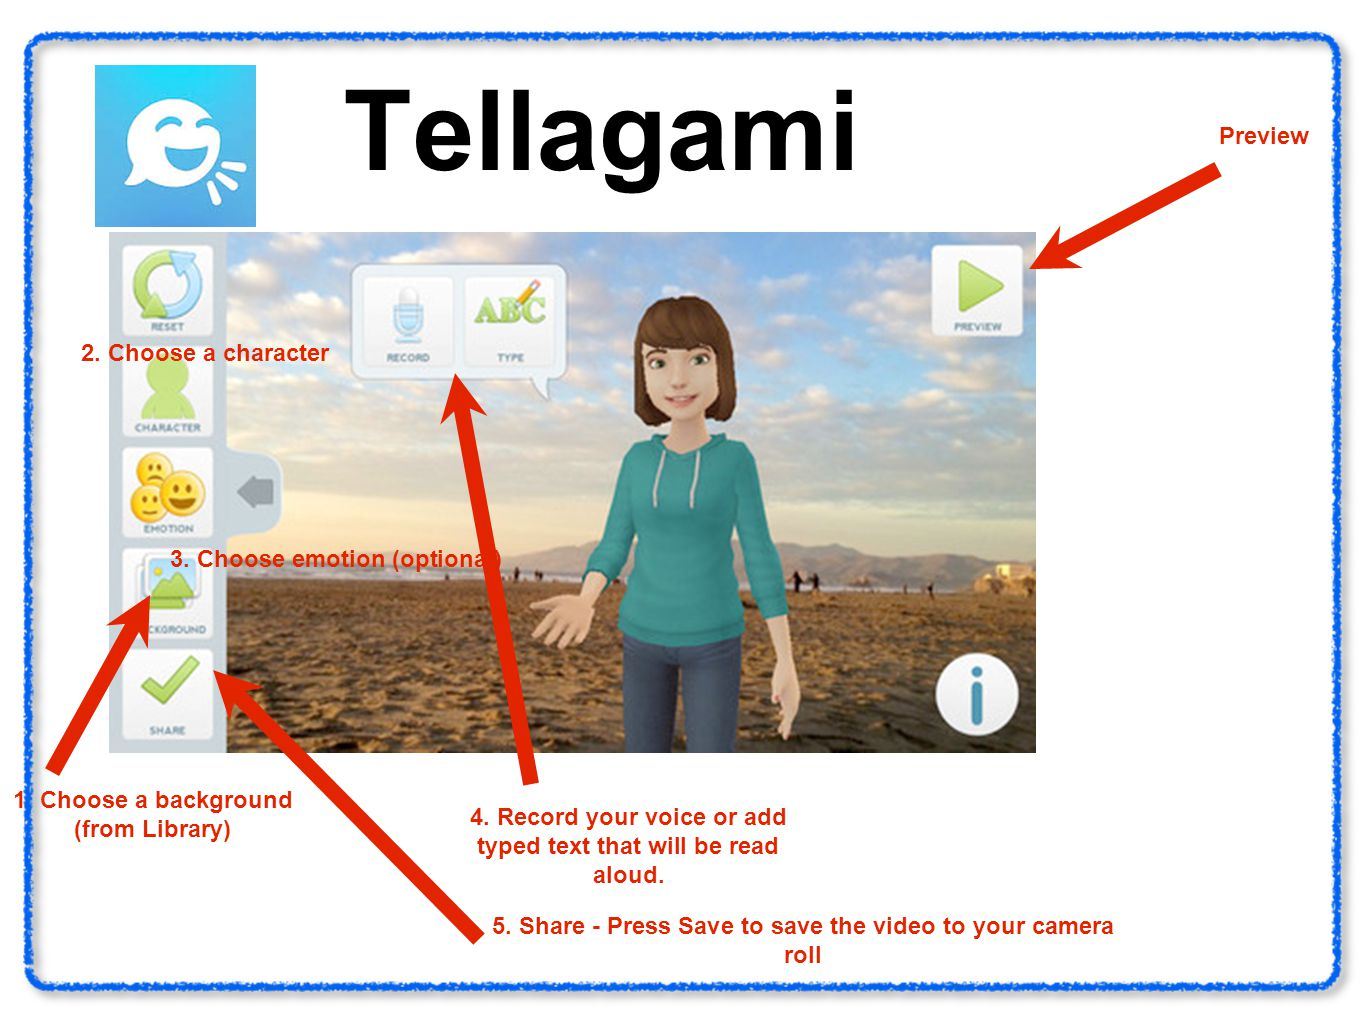 Tellagami Preview 1. Choose a background (from Library) 2.